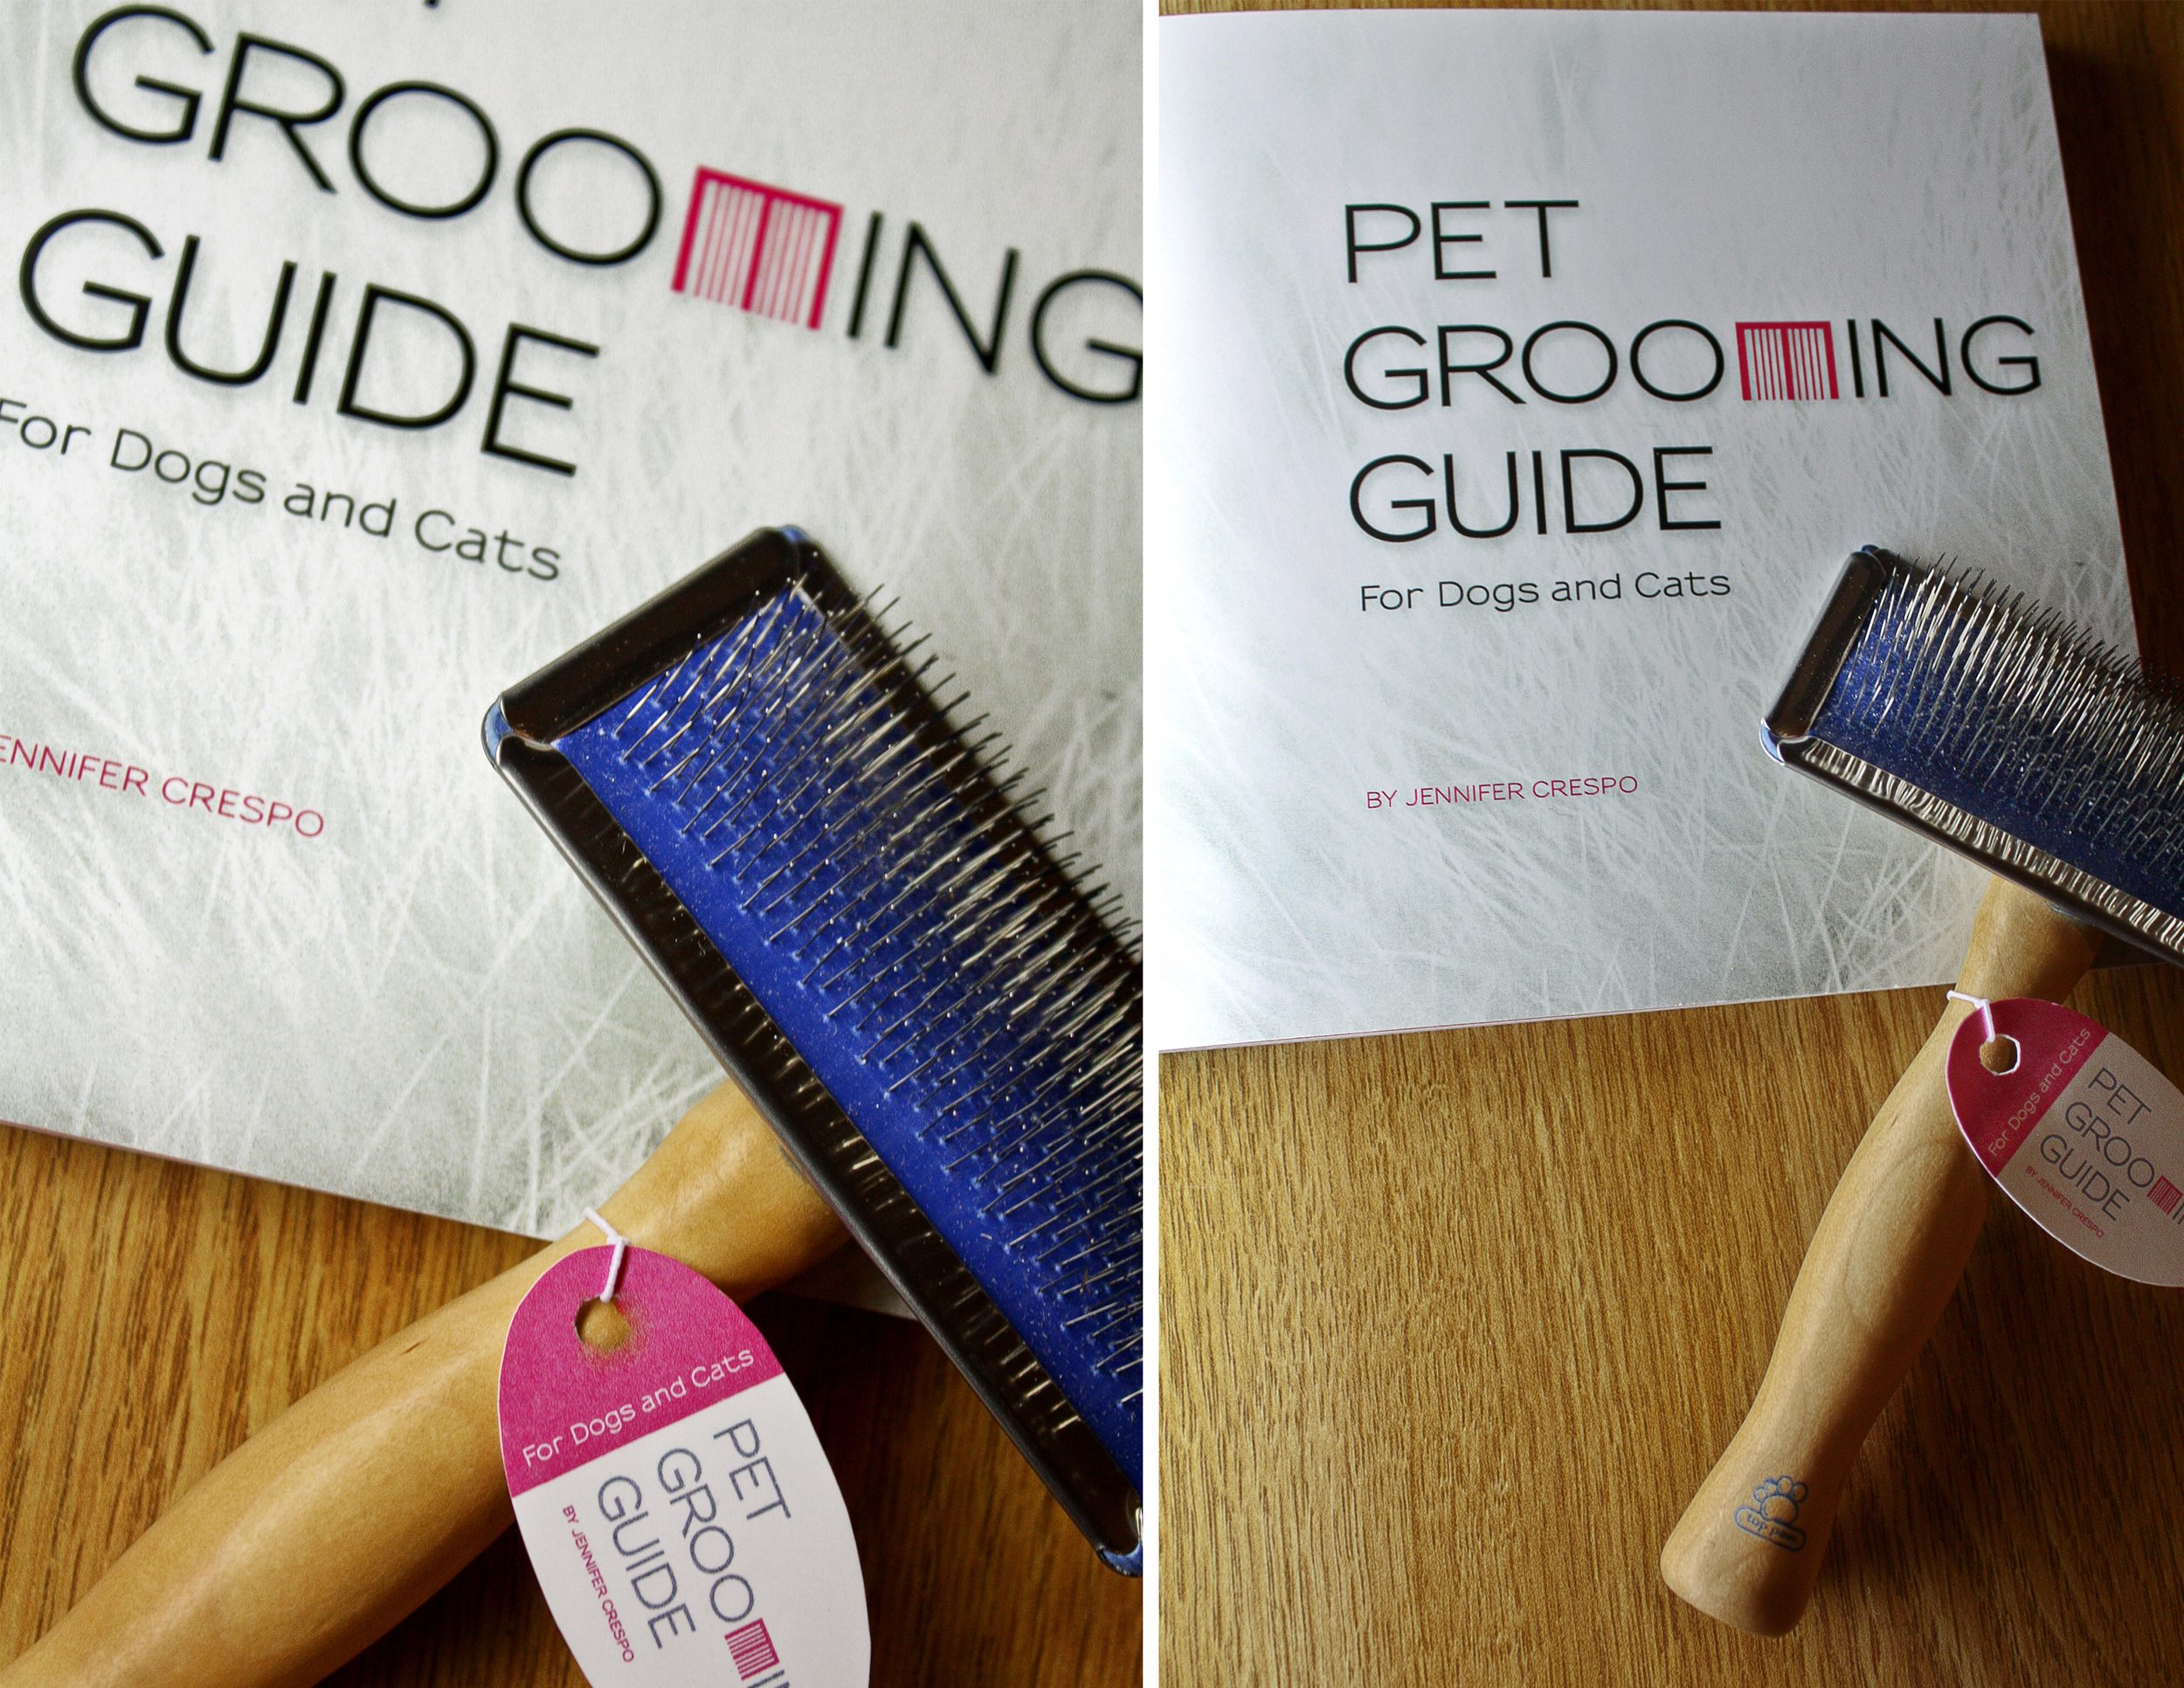 pet_grooming_guide.jpg